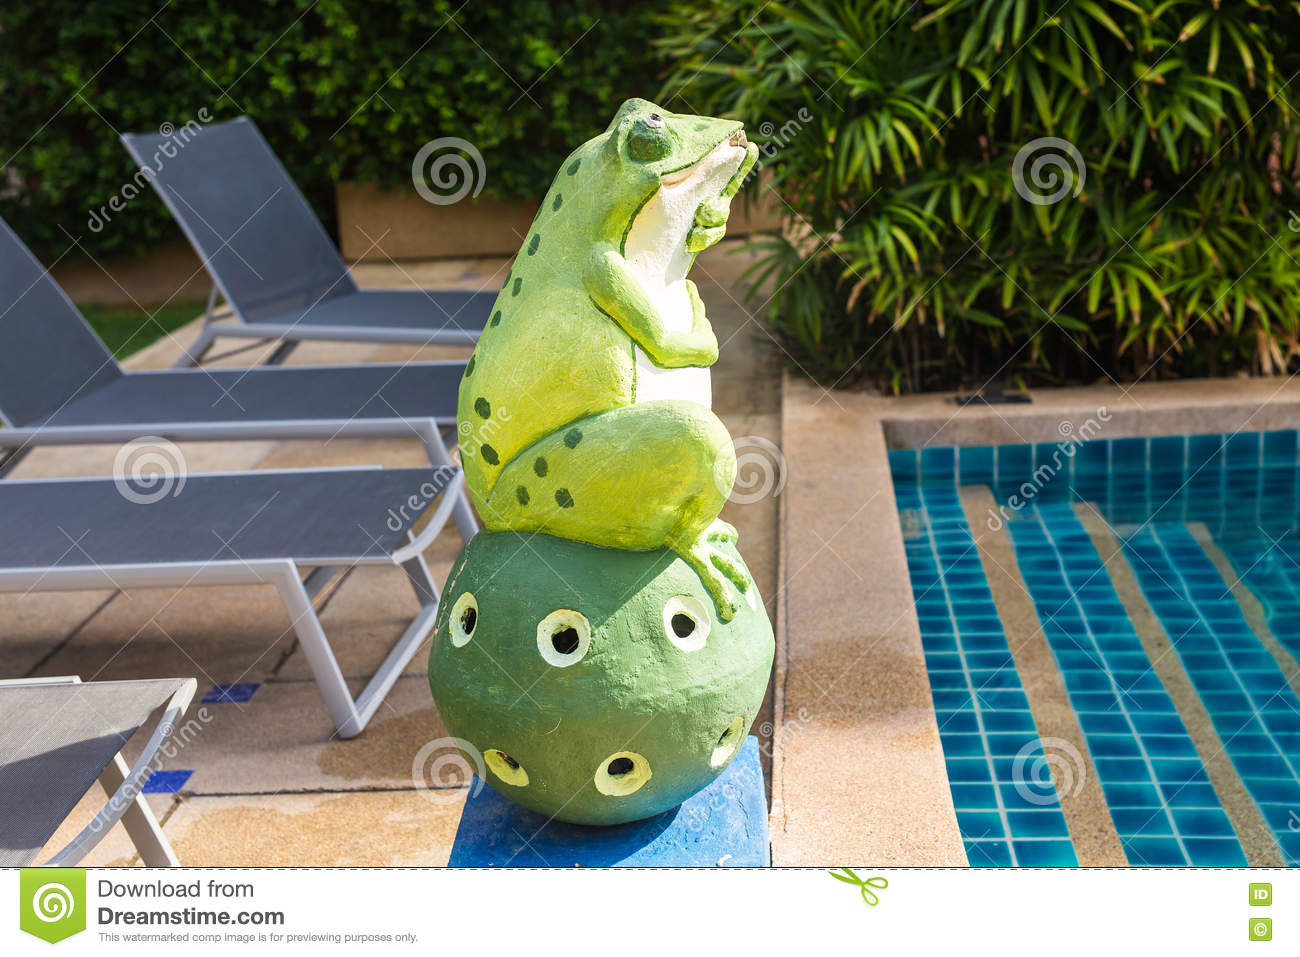 Decoration jardin grenouille inspiraci n para el dise o for Decoration jardin grenouille